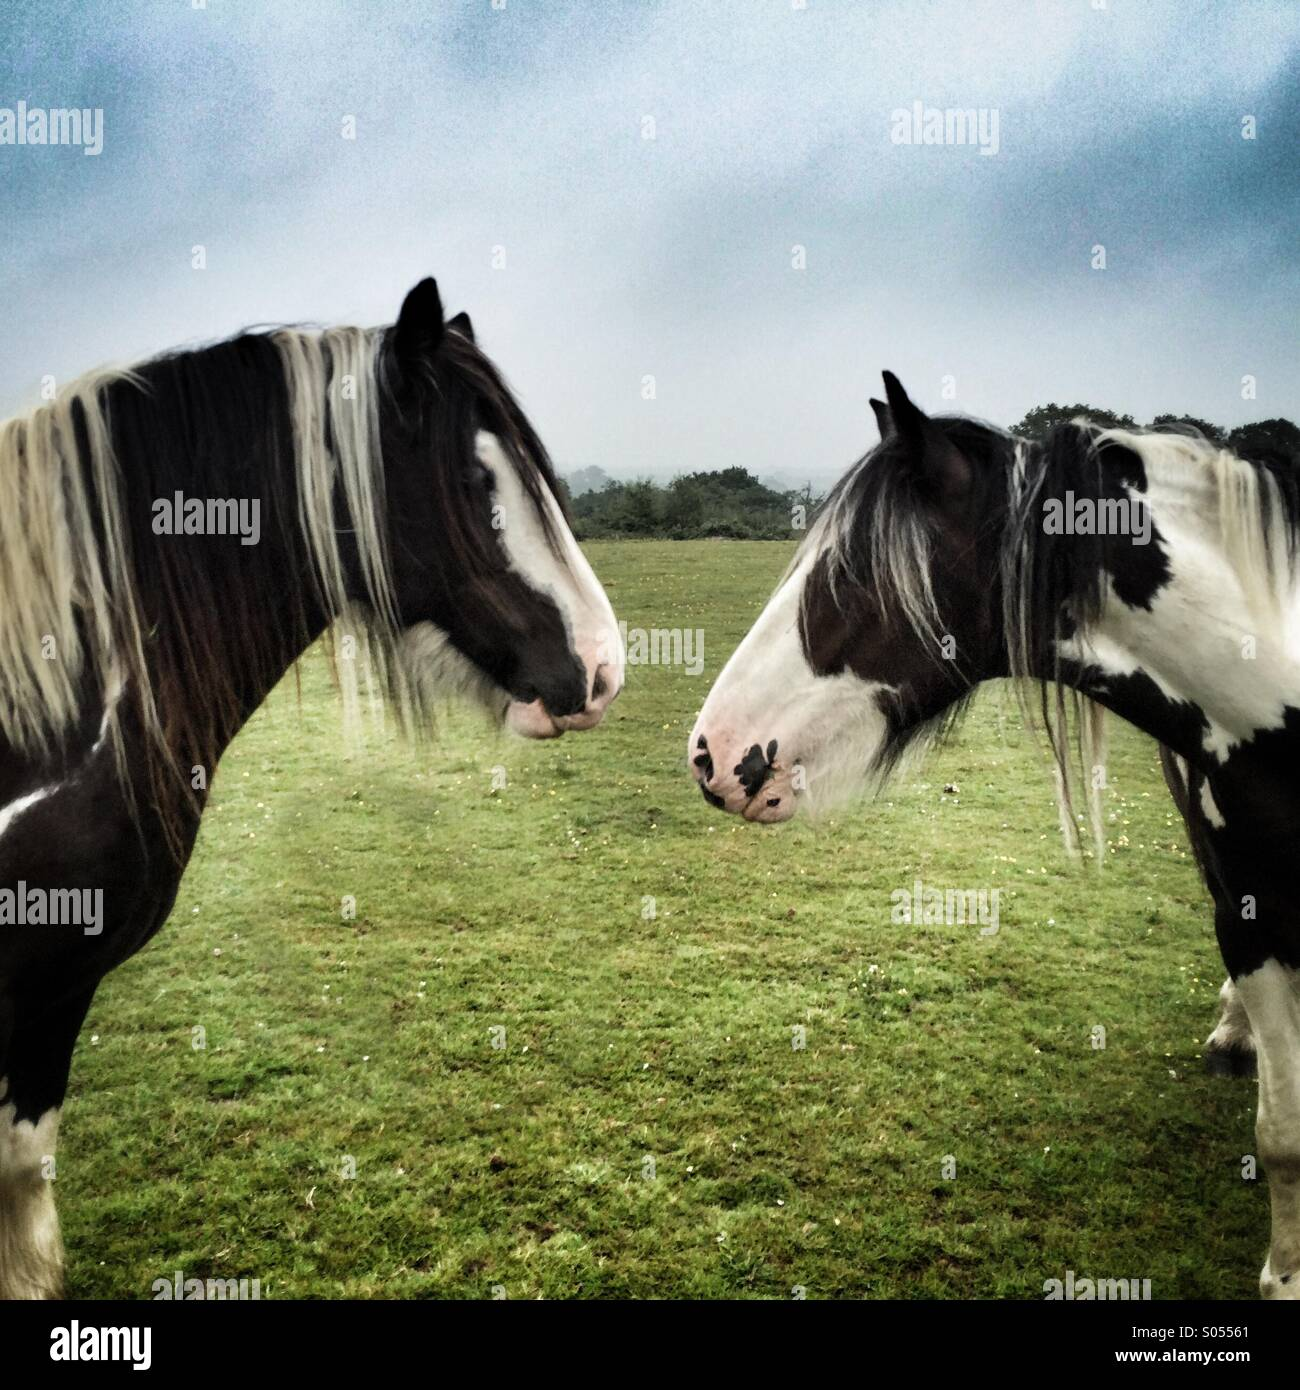 Side view of 2 horses - Stock Image